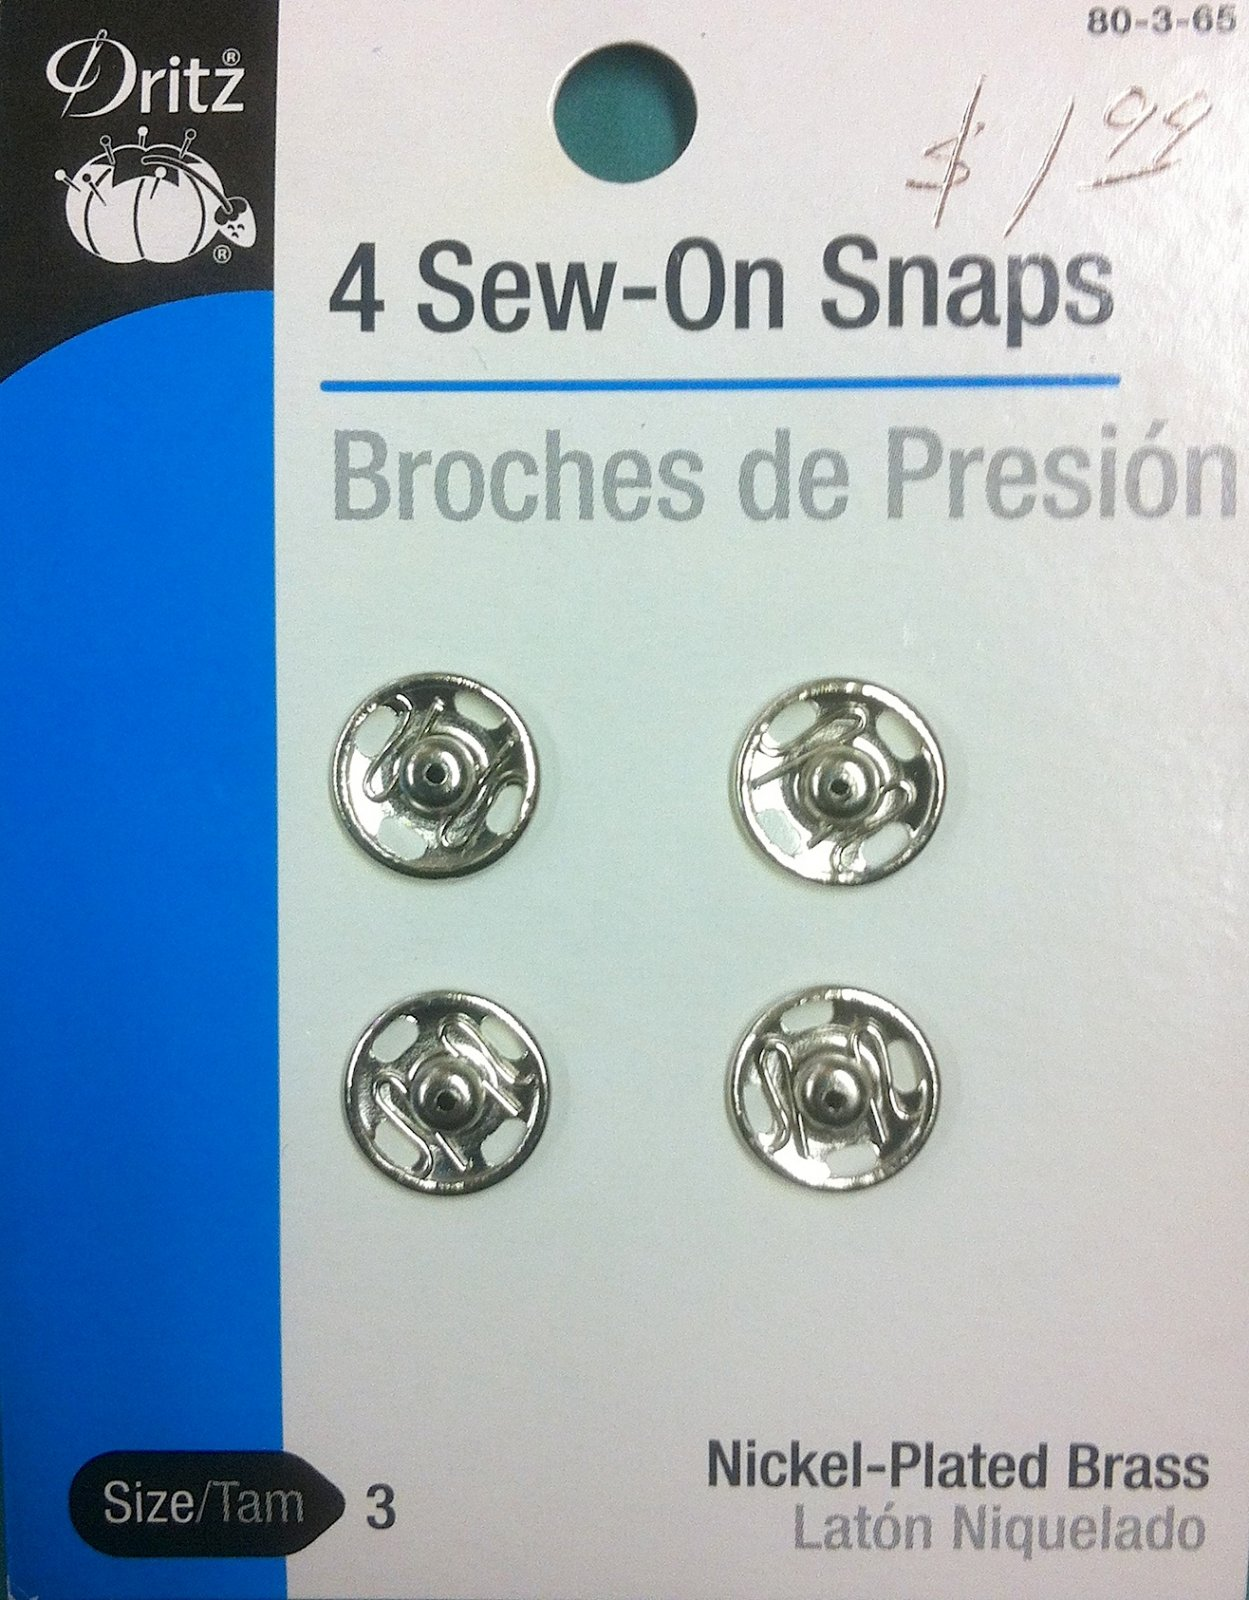 4 Sew-On Snaps Size 3